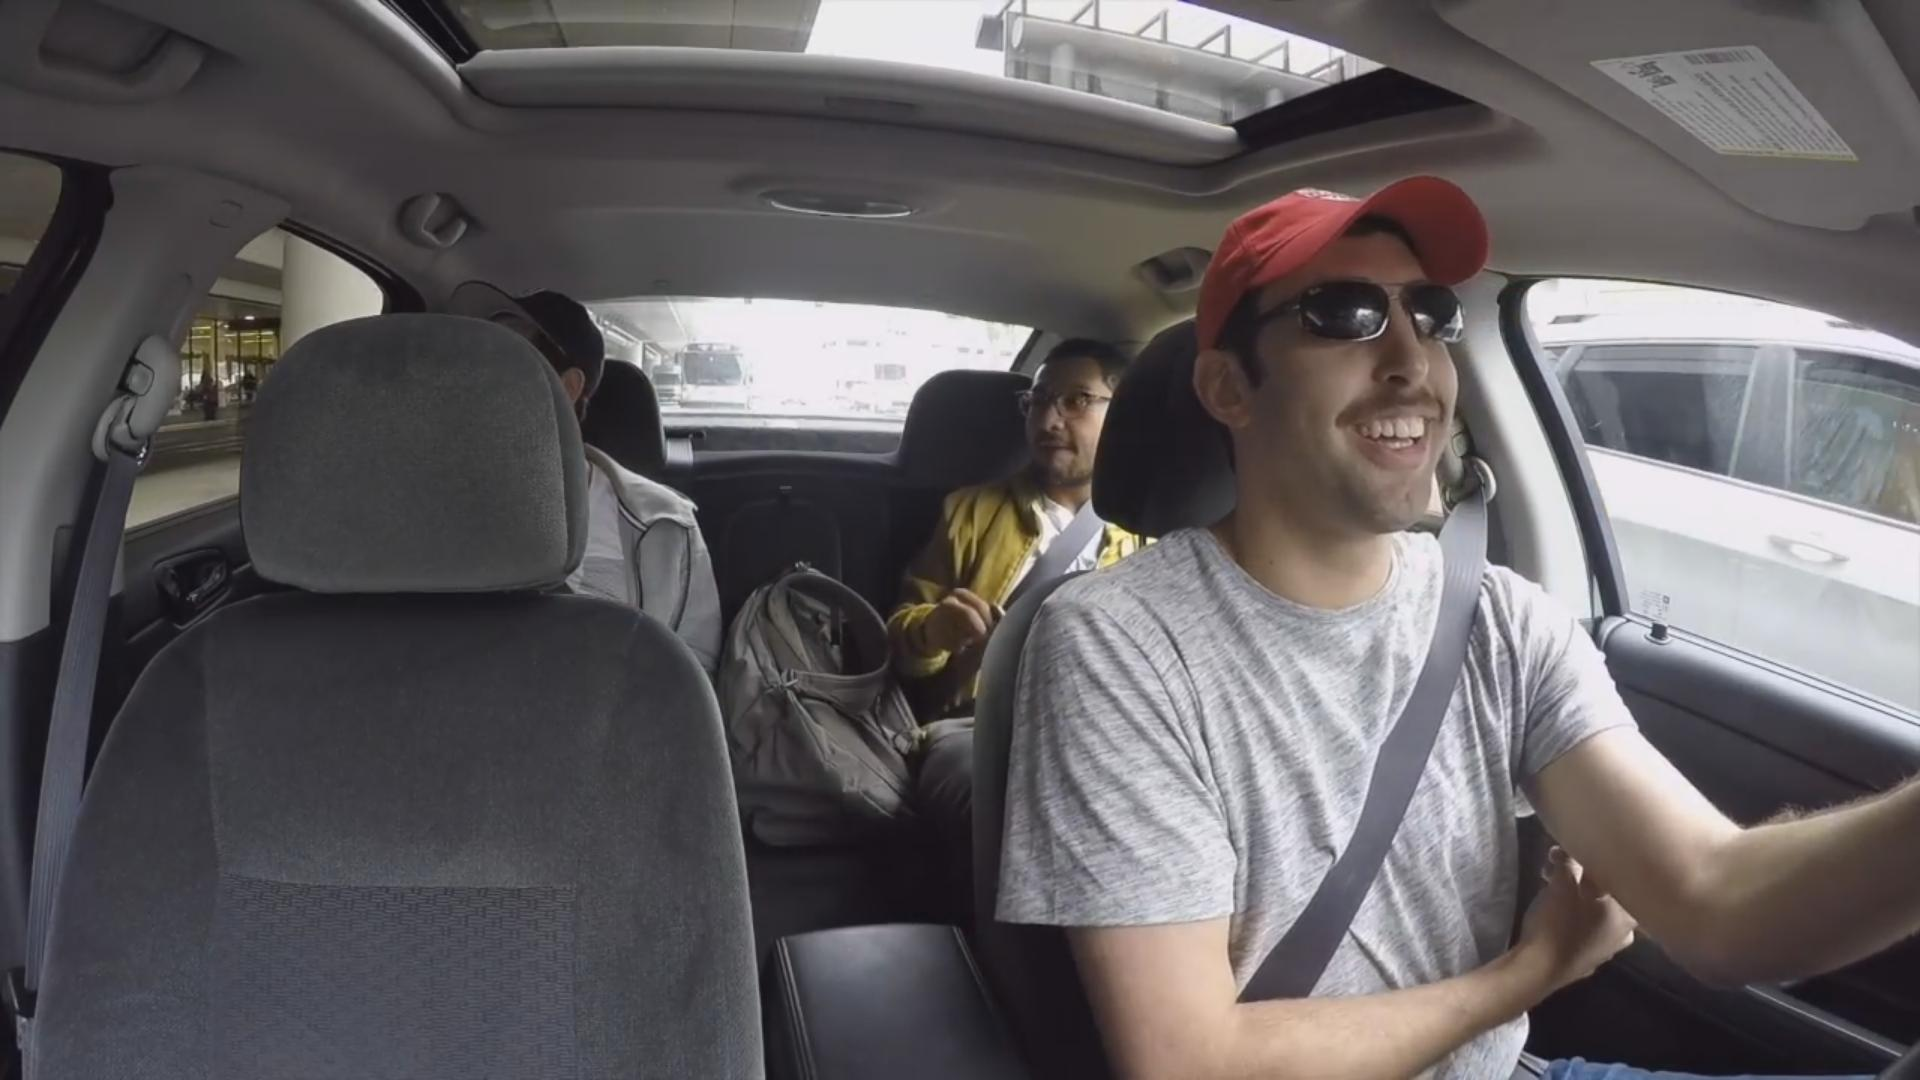 He Surprises His Friend With a Fake Uber Ride